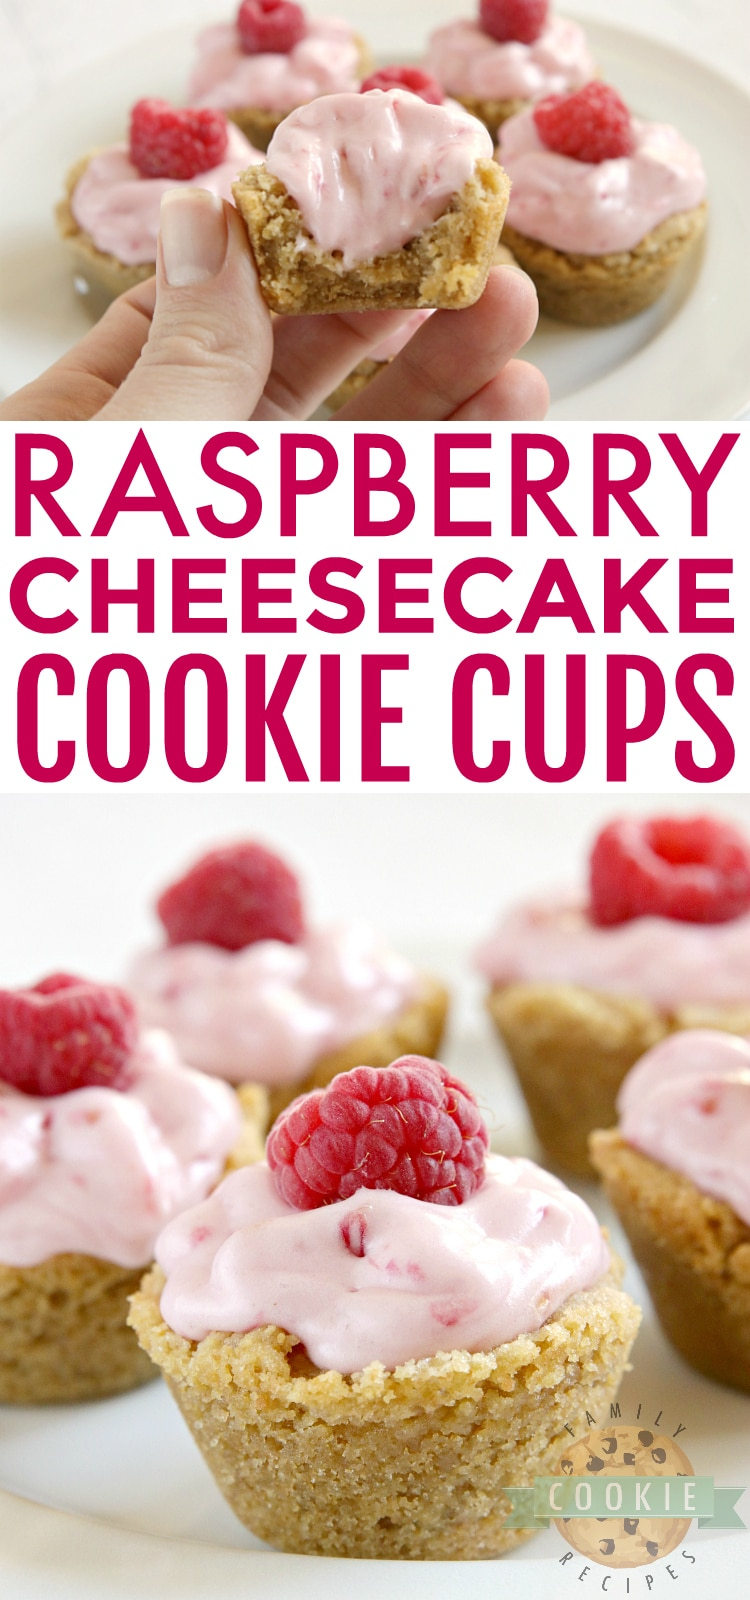 Raspberry Cheesecake Cookie Cups have a raspberry cheesecake filling in a bite-sized graham cracker cookie crust. These delicious cookie cups taste just like raspberry cheesecake and only take a few minutes to make! via @familycookierecipes